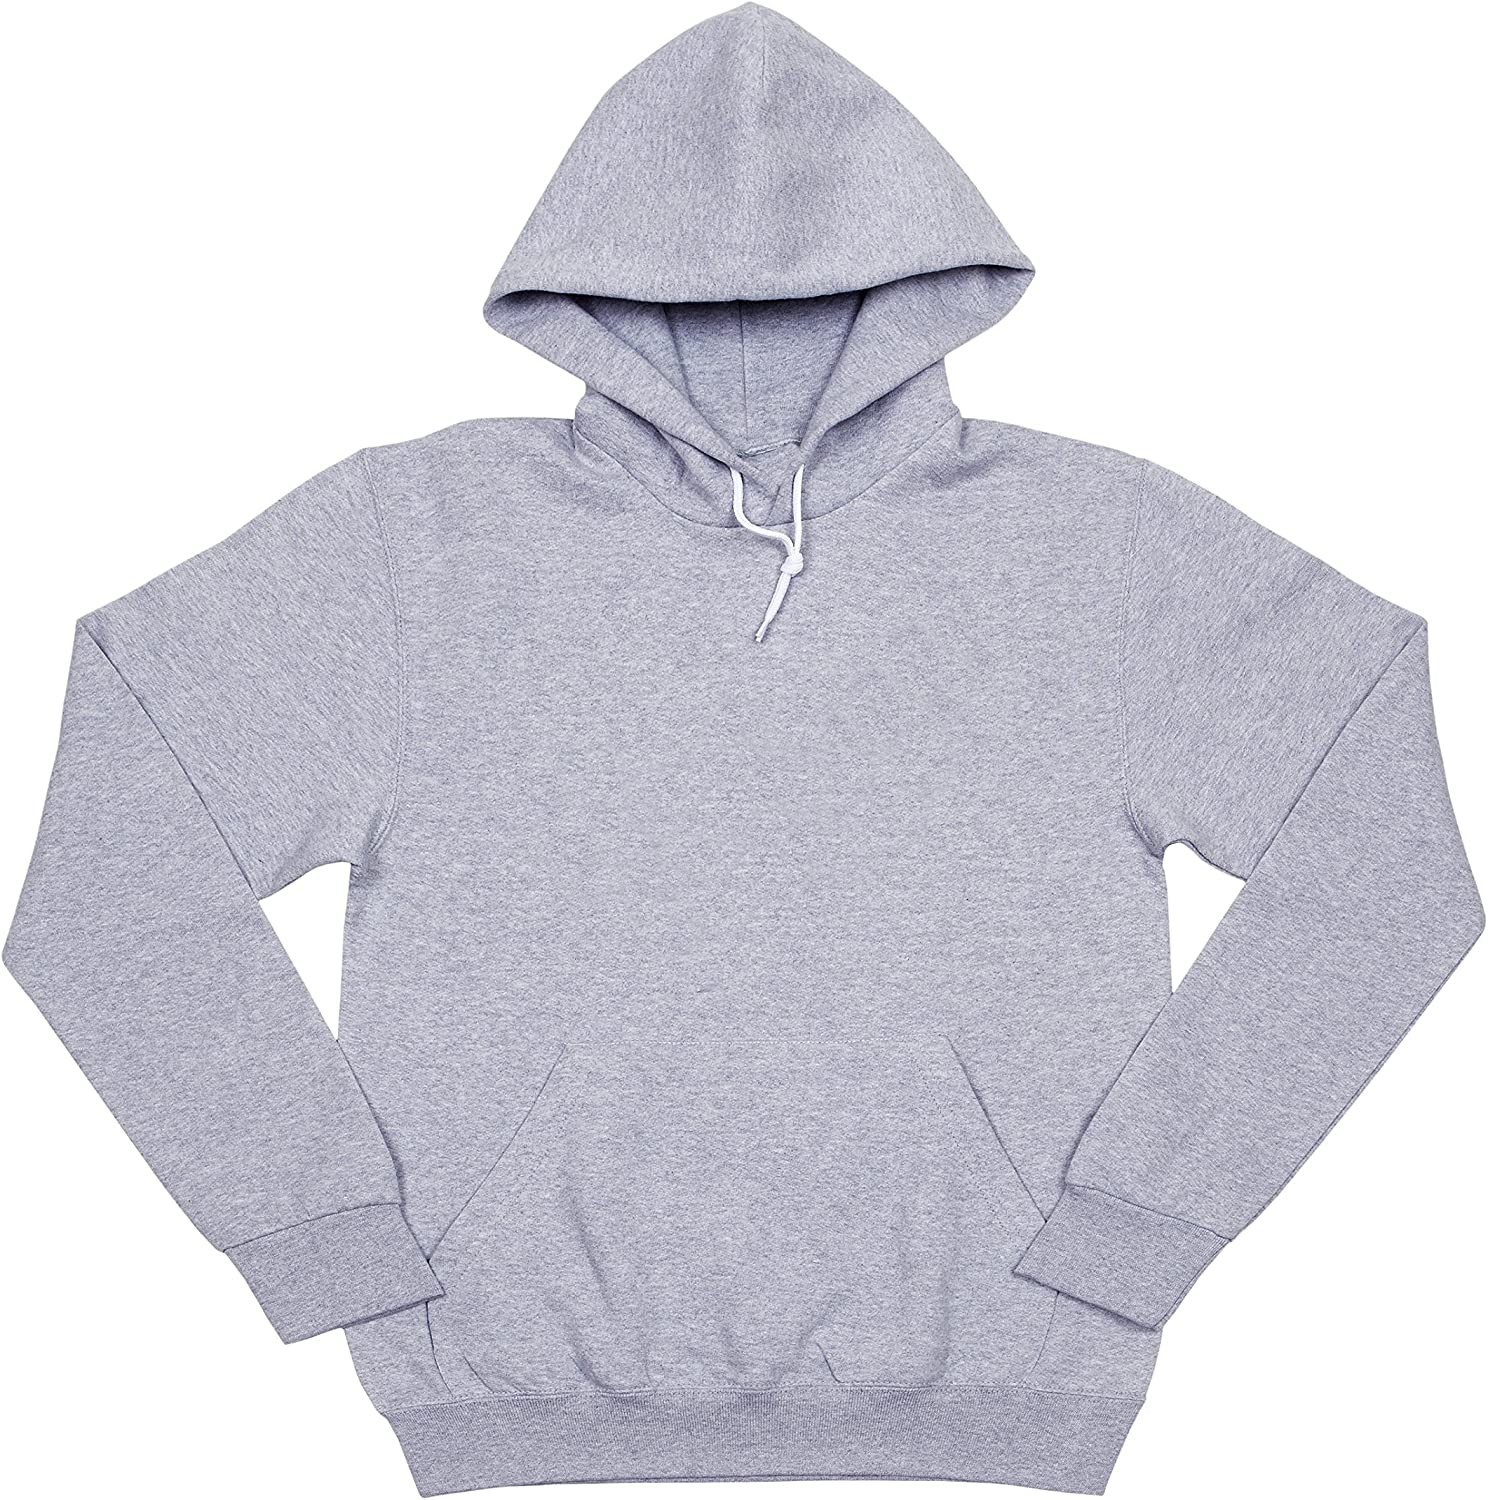 US Basics Apparel Mens Womens Blank Fleece Pullover Hoodie Hooded Sweatshirt